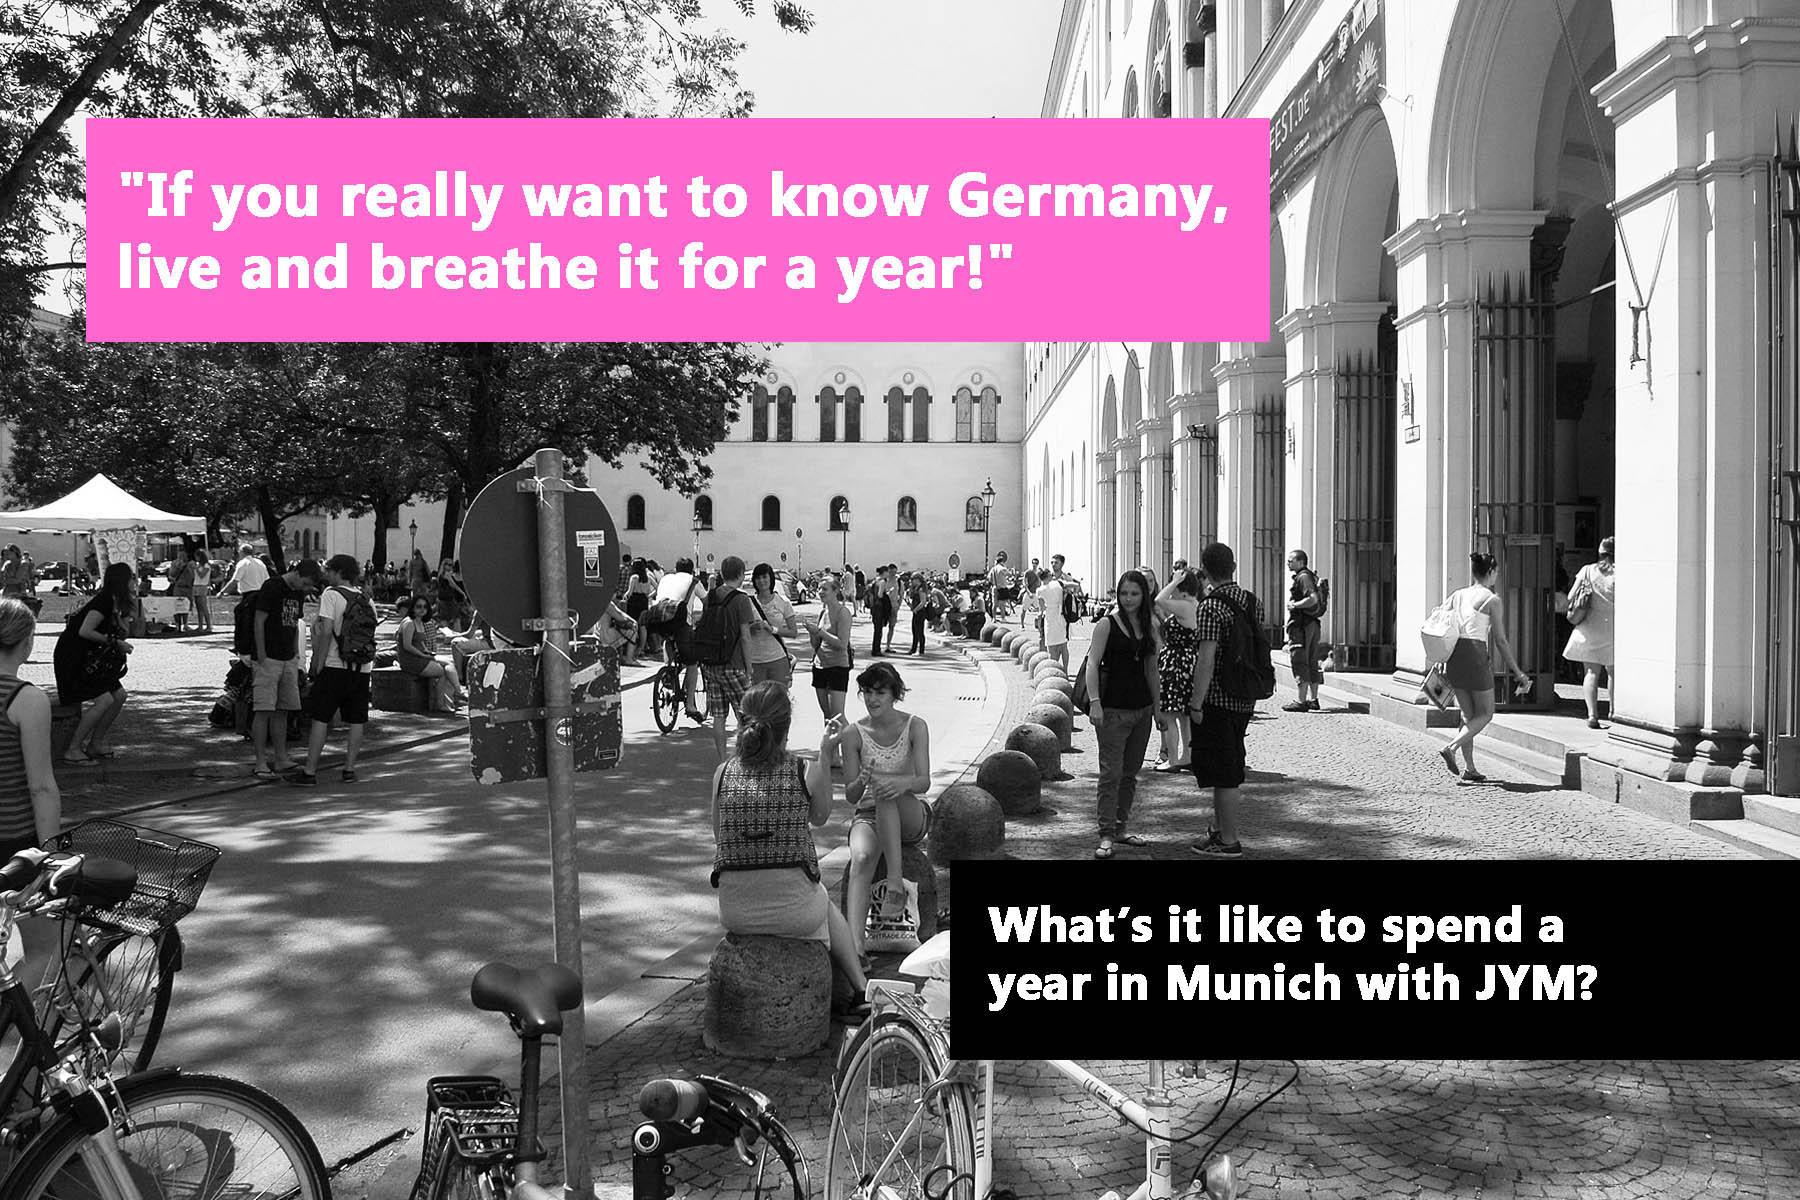 What's it like to spend a year in Munich with JYM?